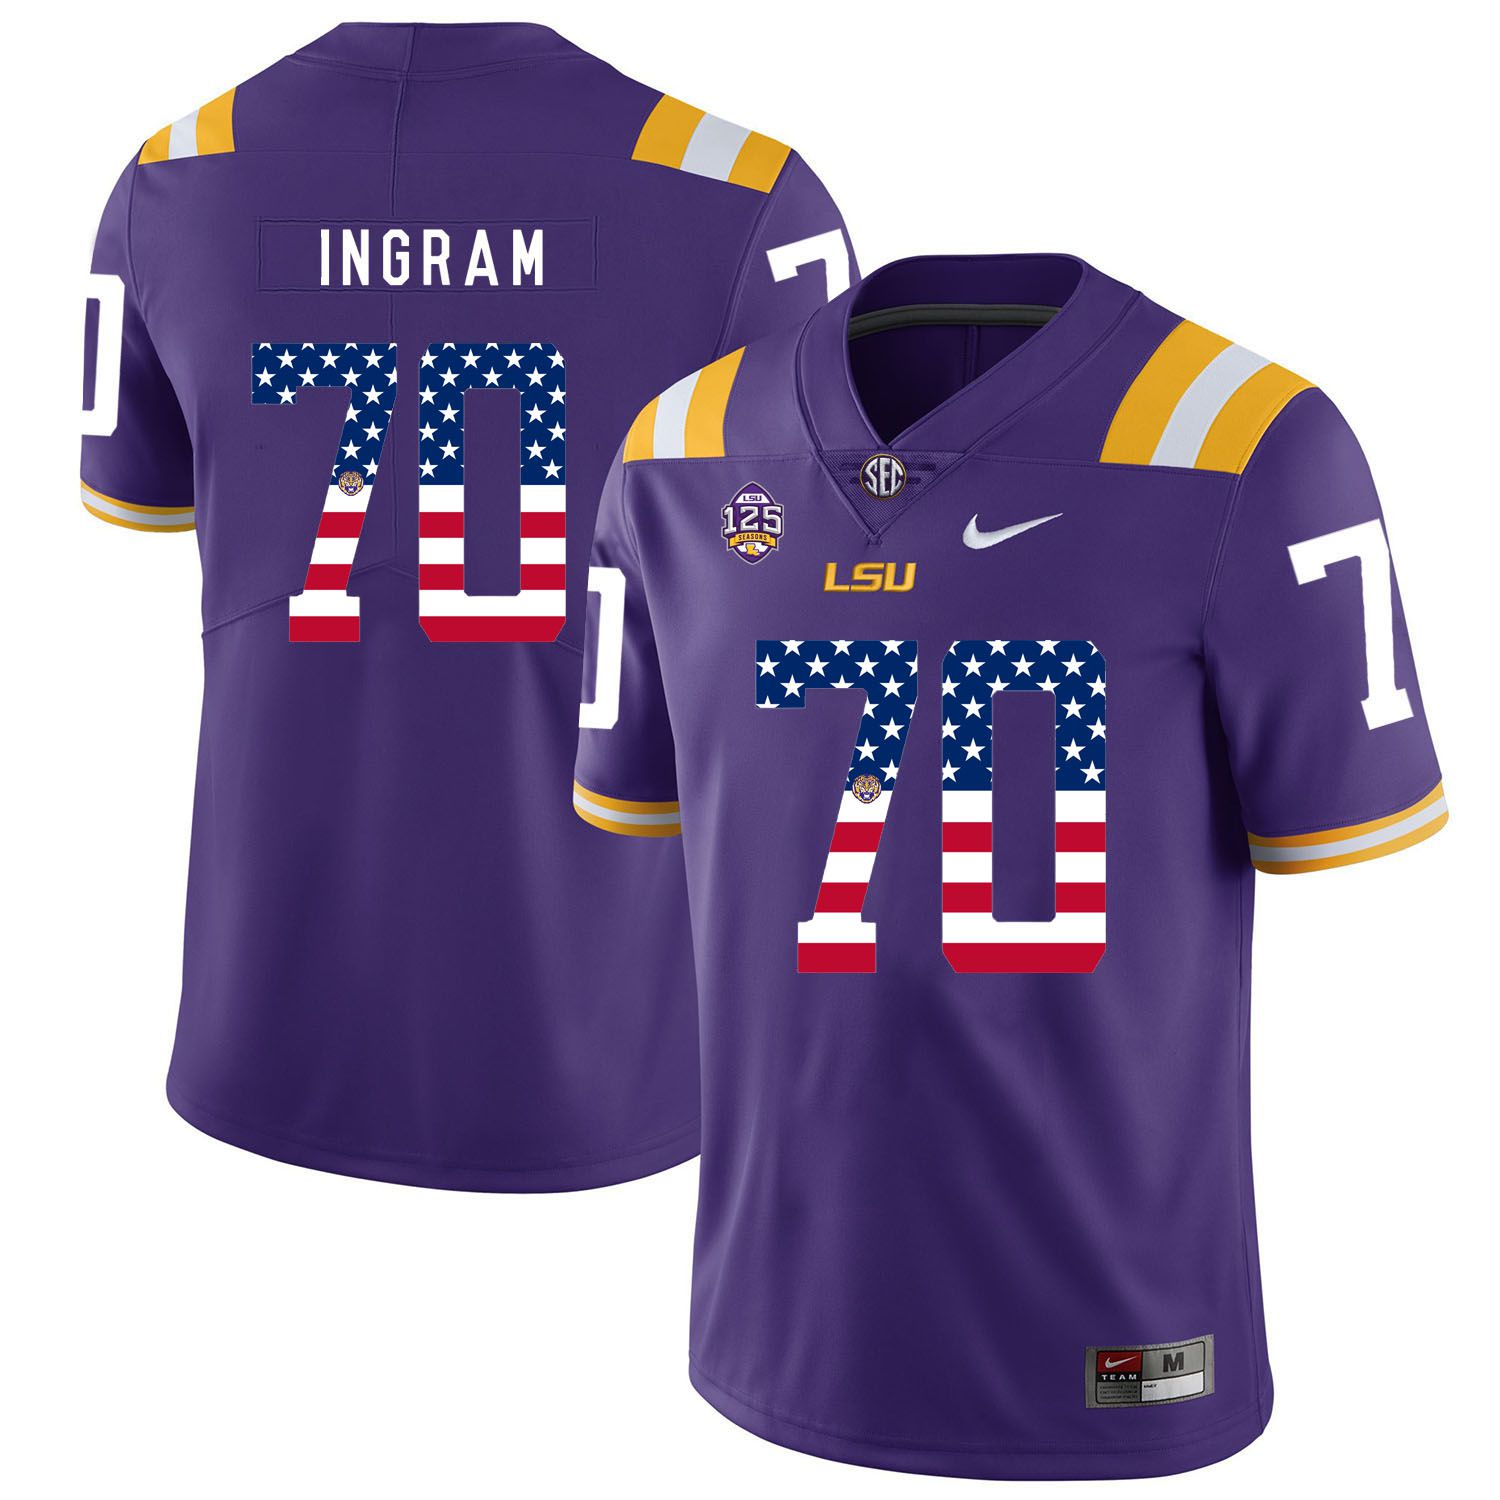 Men LSU Tigers 70 Ingram Purple Flag Customized NCAA Jerseys